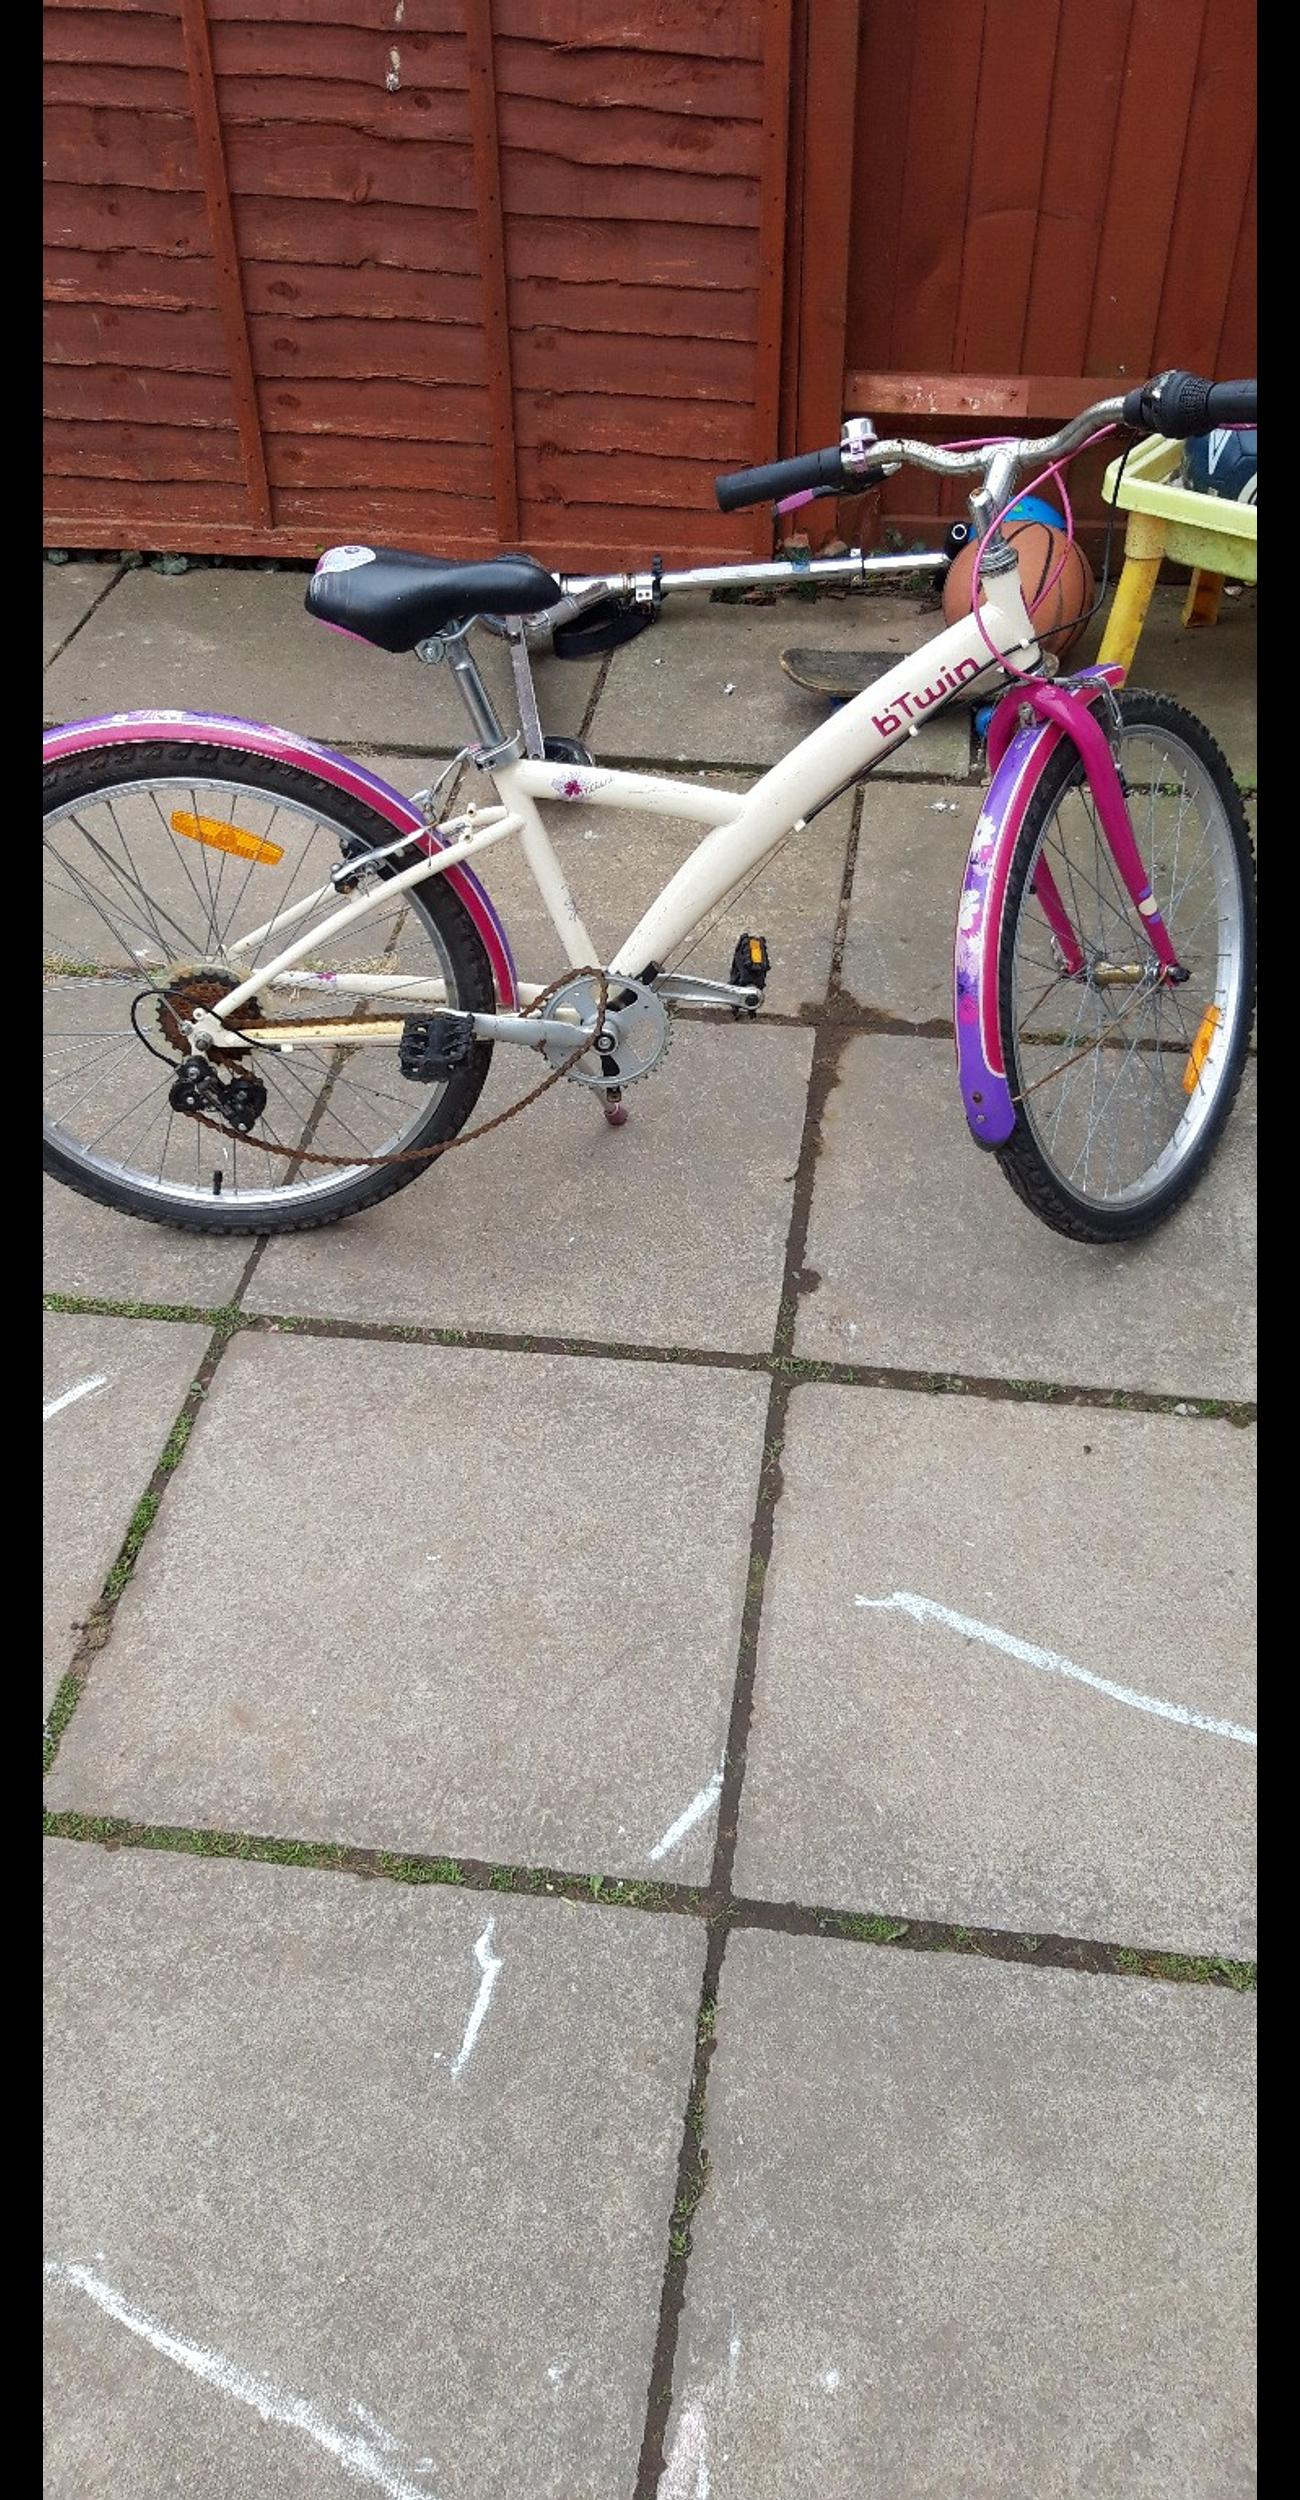 for sale bike for spare or repair problem with chain Price £10 collection only